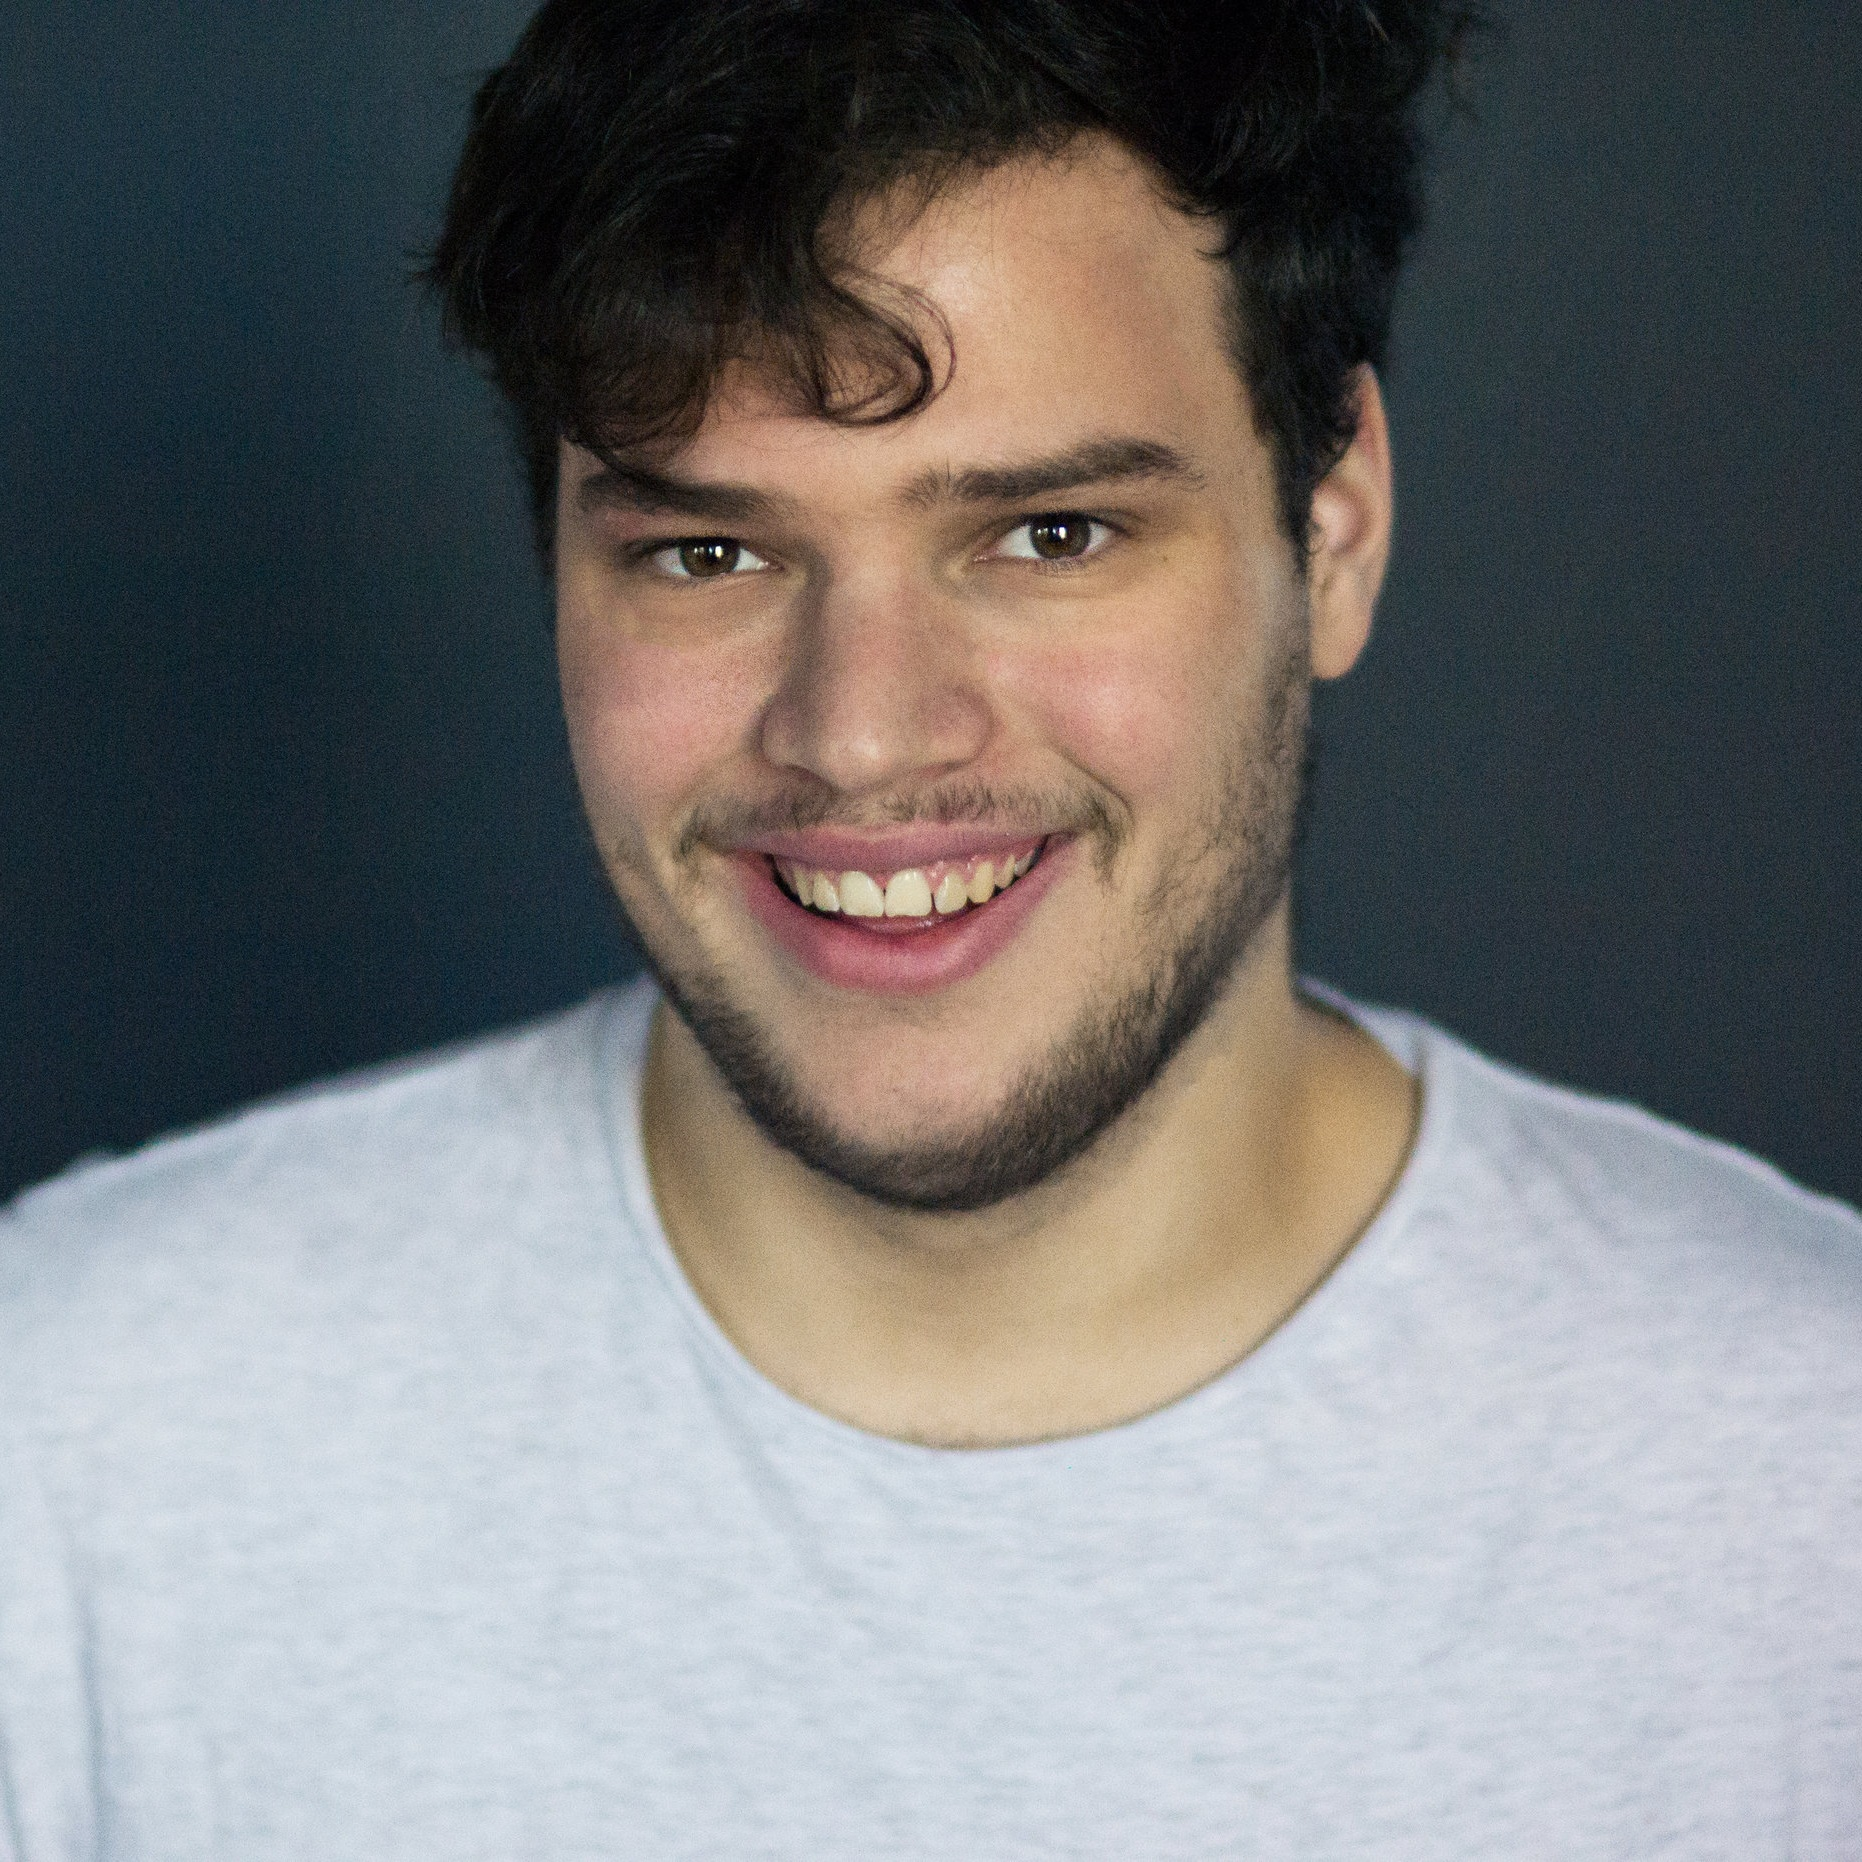 JUAN OTERO   AS AGENT NICHOLAS SOTO    Bio: Juan is thrilled to be joining the Reefer Madness: Origins company. He was born in Caracas, Venezuela, and moved to Calgary when he was ten. Since then he has been performing every chance he gets. Acting has taken him from the Canadian Badlands, in their world famous Passion play, to the University of Lethbridge, in their prestigious theatre performance program, to Toronto now, where he takes part in performances throughout the city in the Wrestling Without Wrestling sketch troupe. Juan's most recently was a part of Ghostlight Player's production of Spring Awakening.